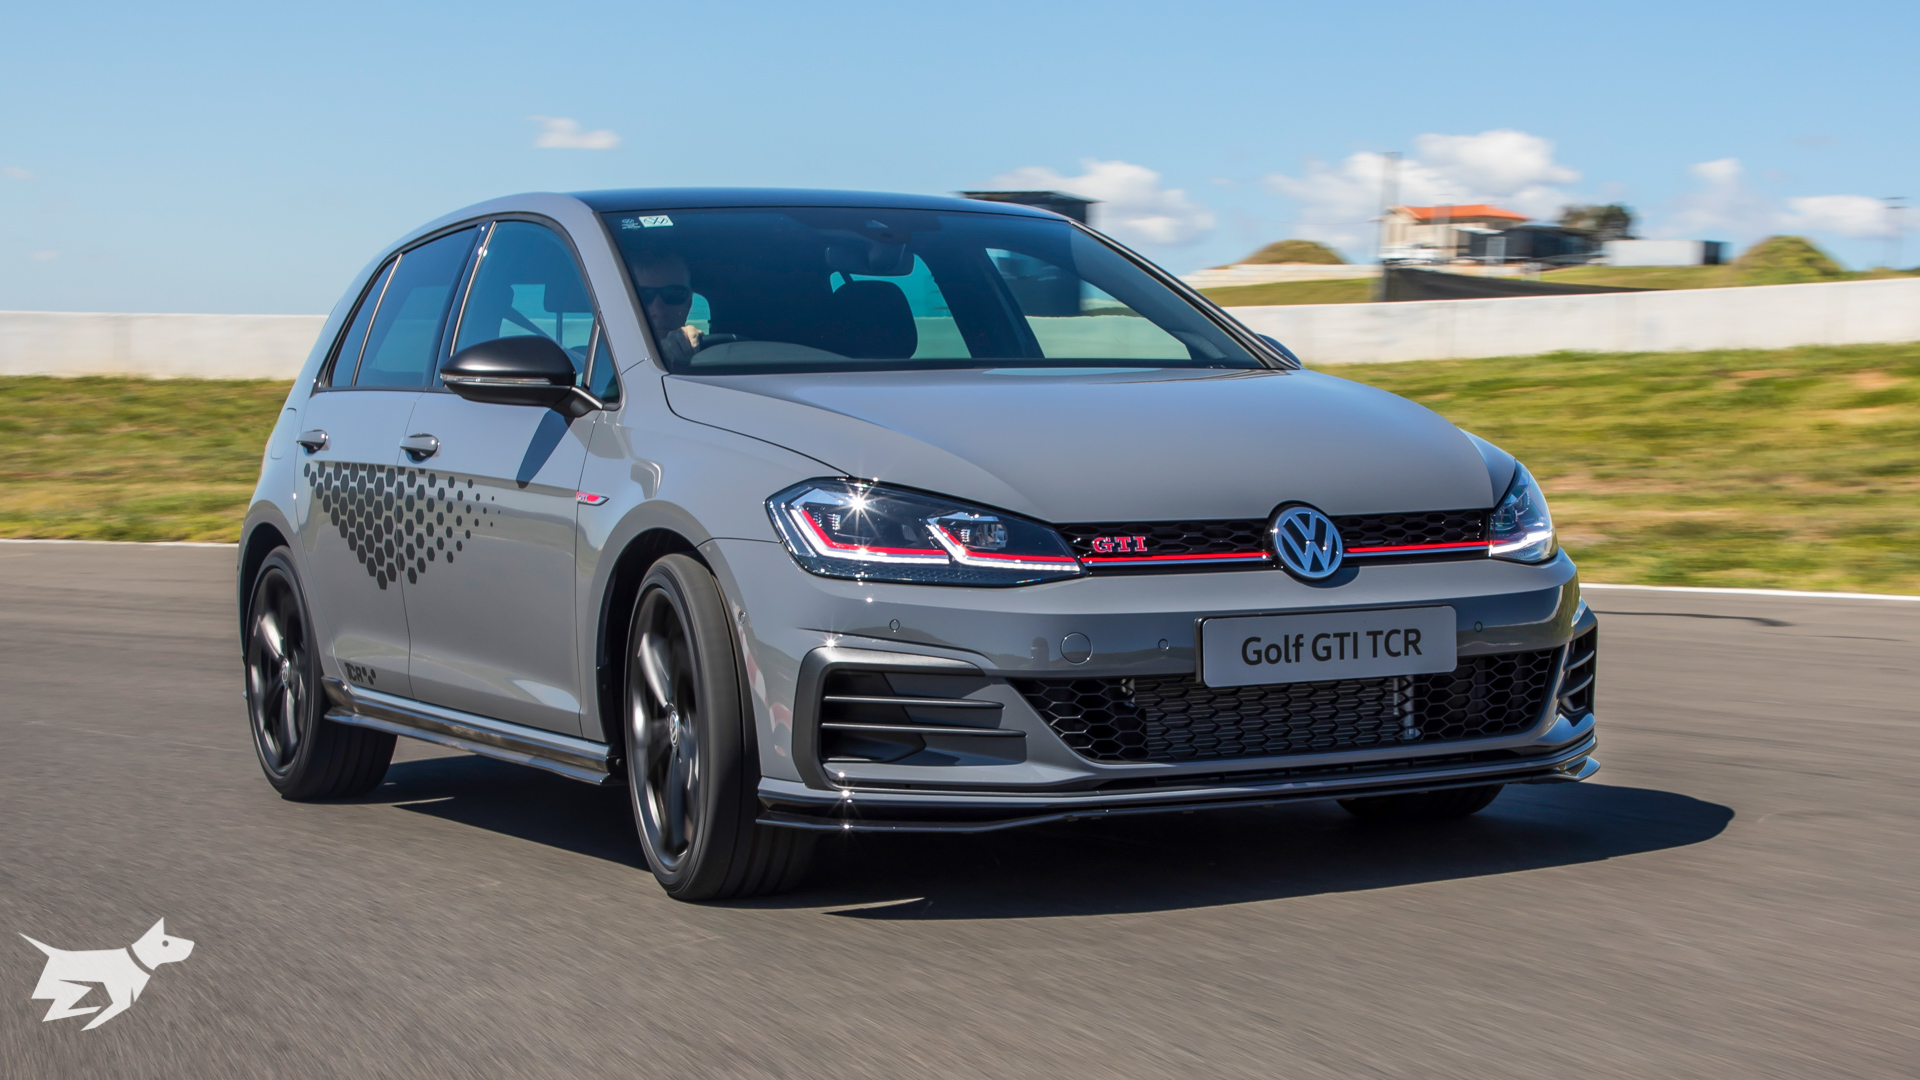 Volkswagen Golf GTI TCR in Pure Grey on track